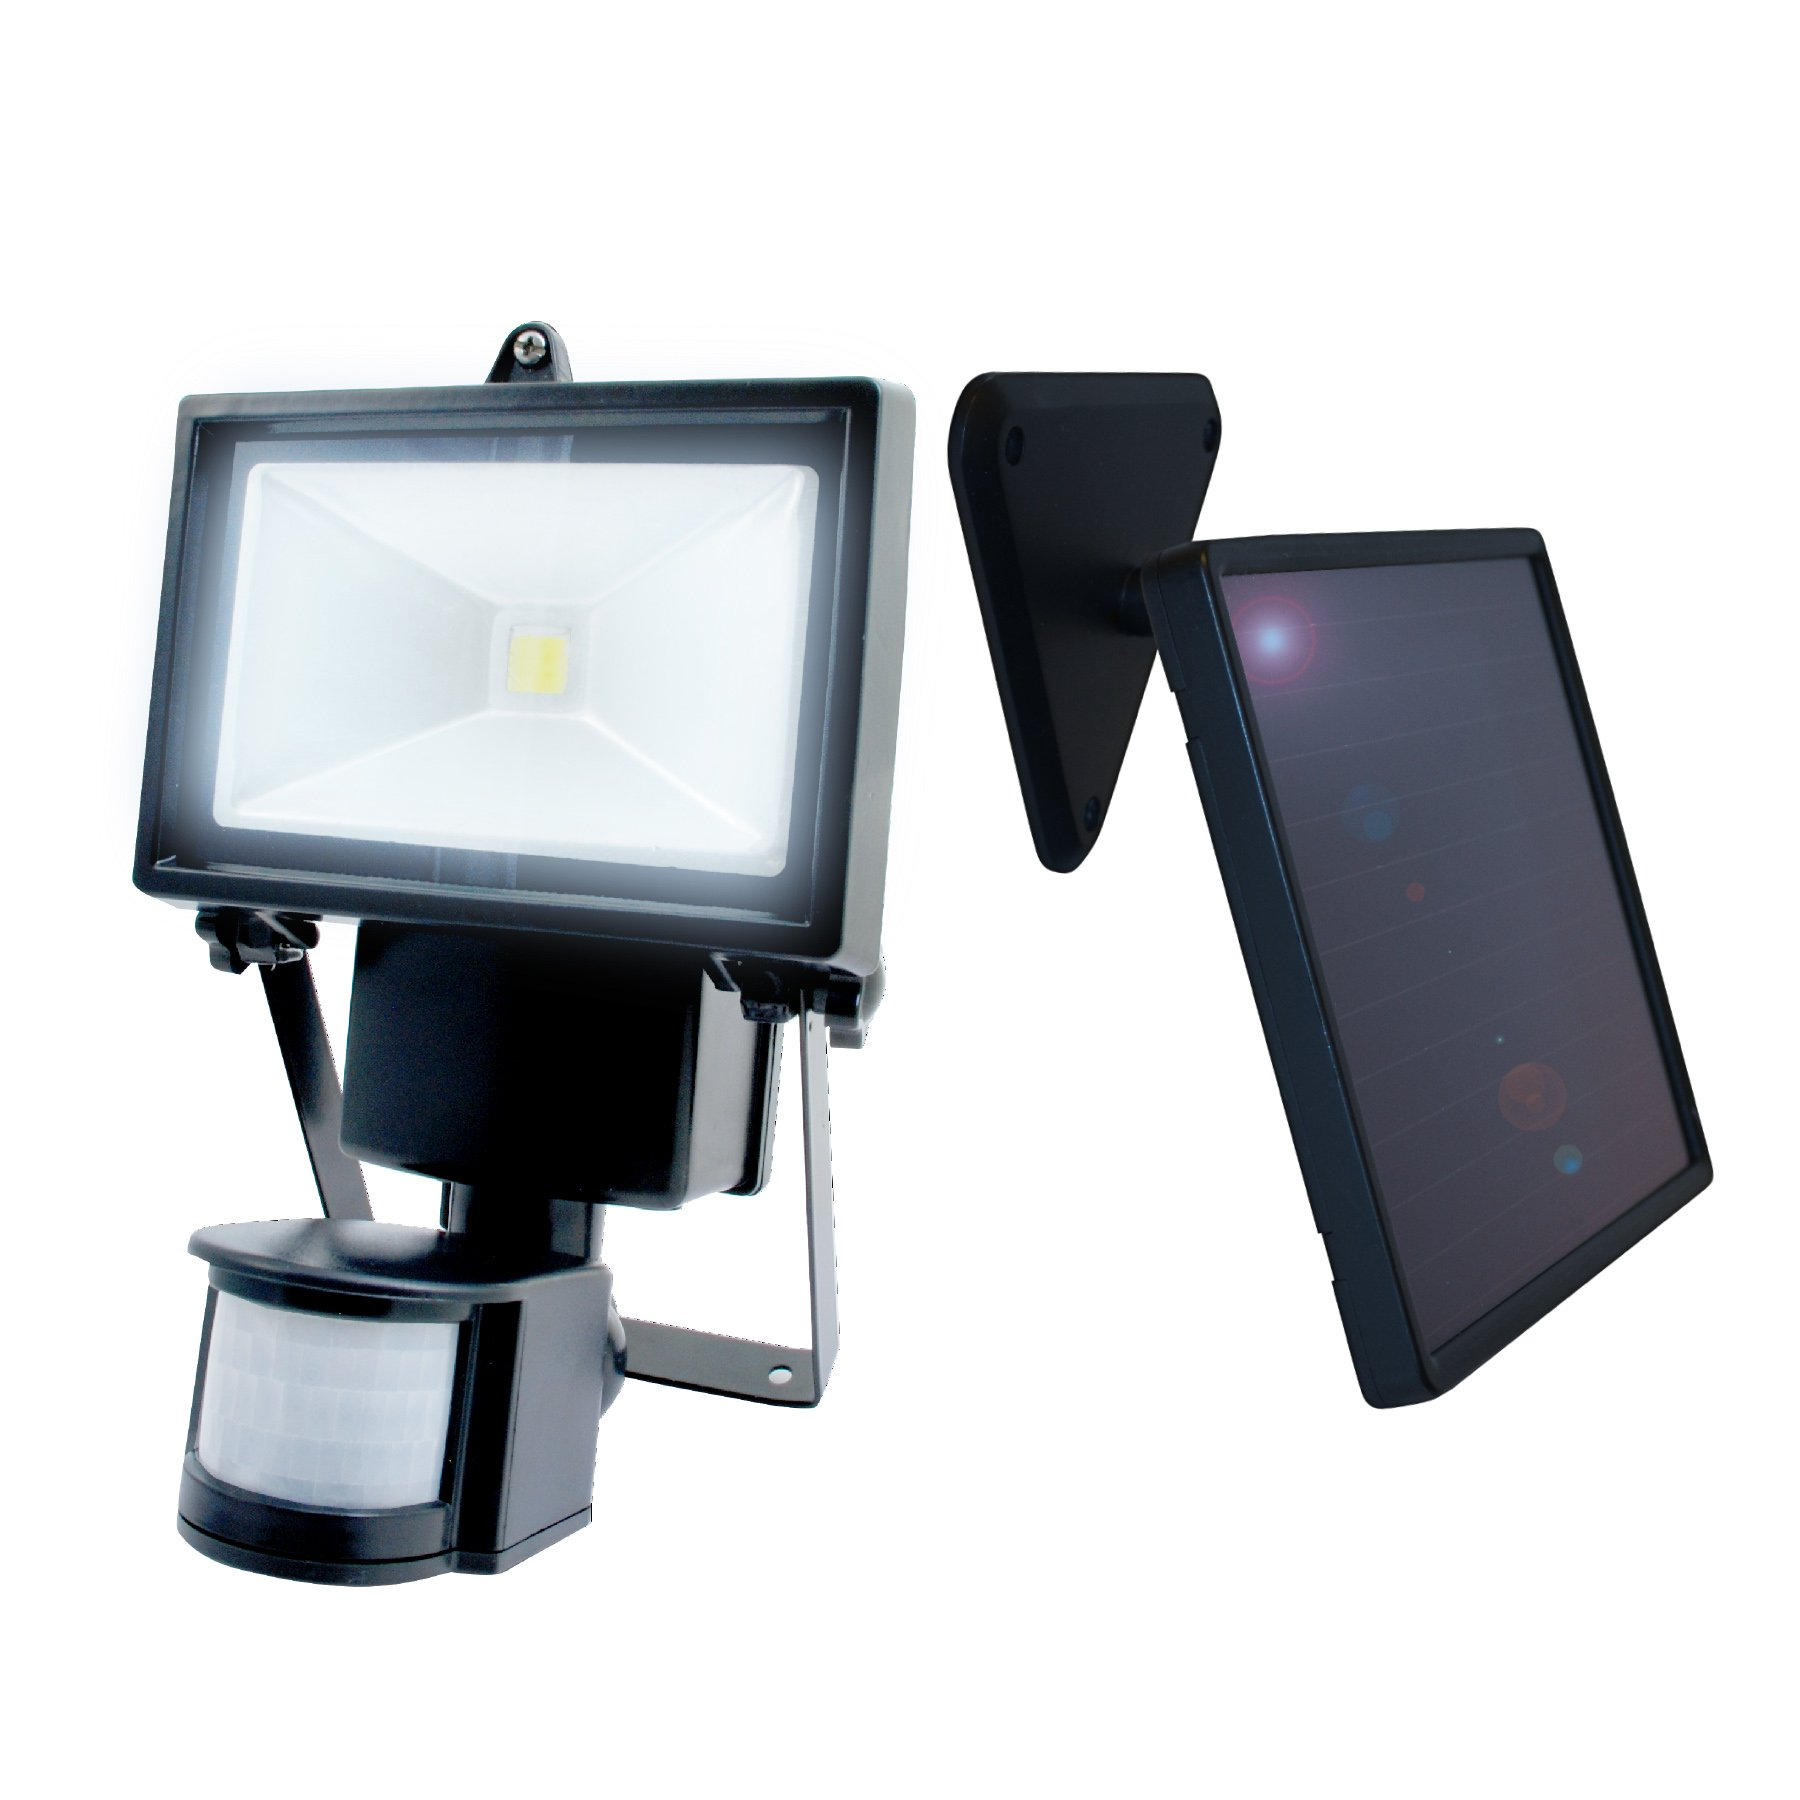 Nature Power 22260 Solar Motion Sensing Security Light with Advance LED Technology